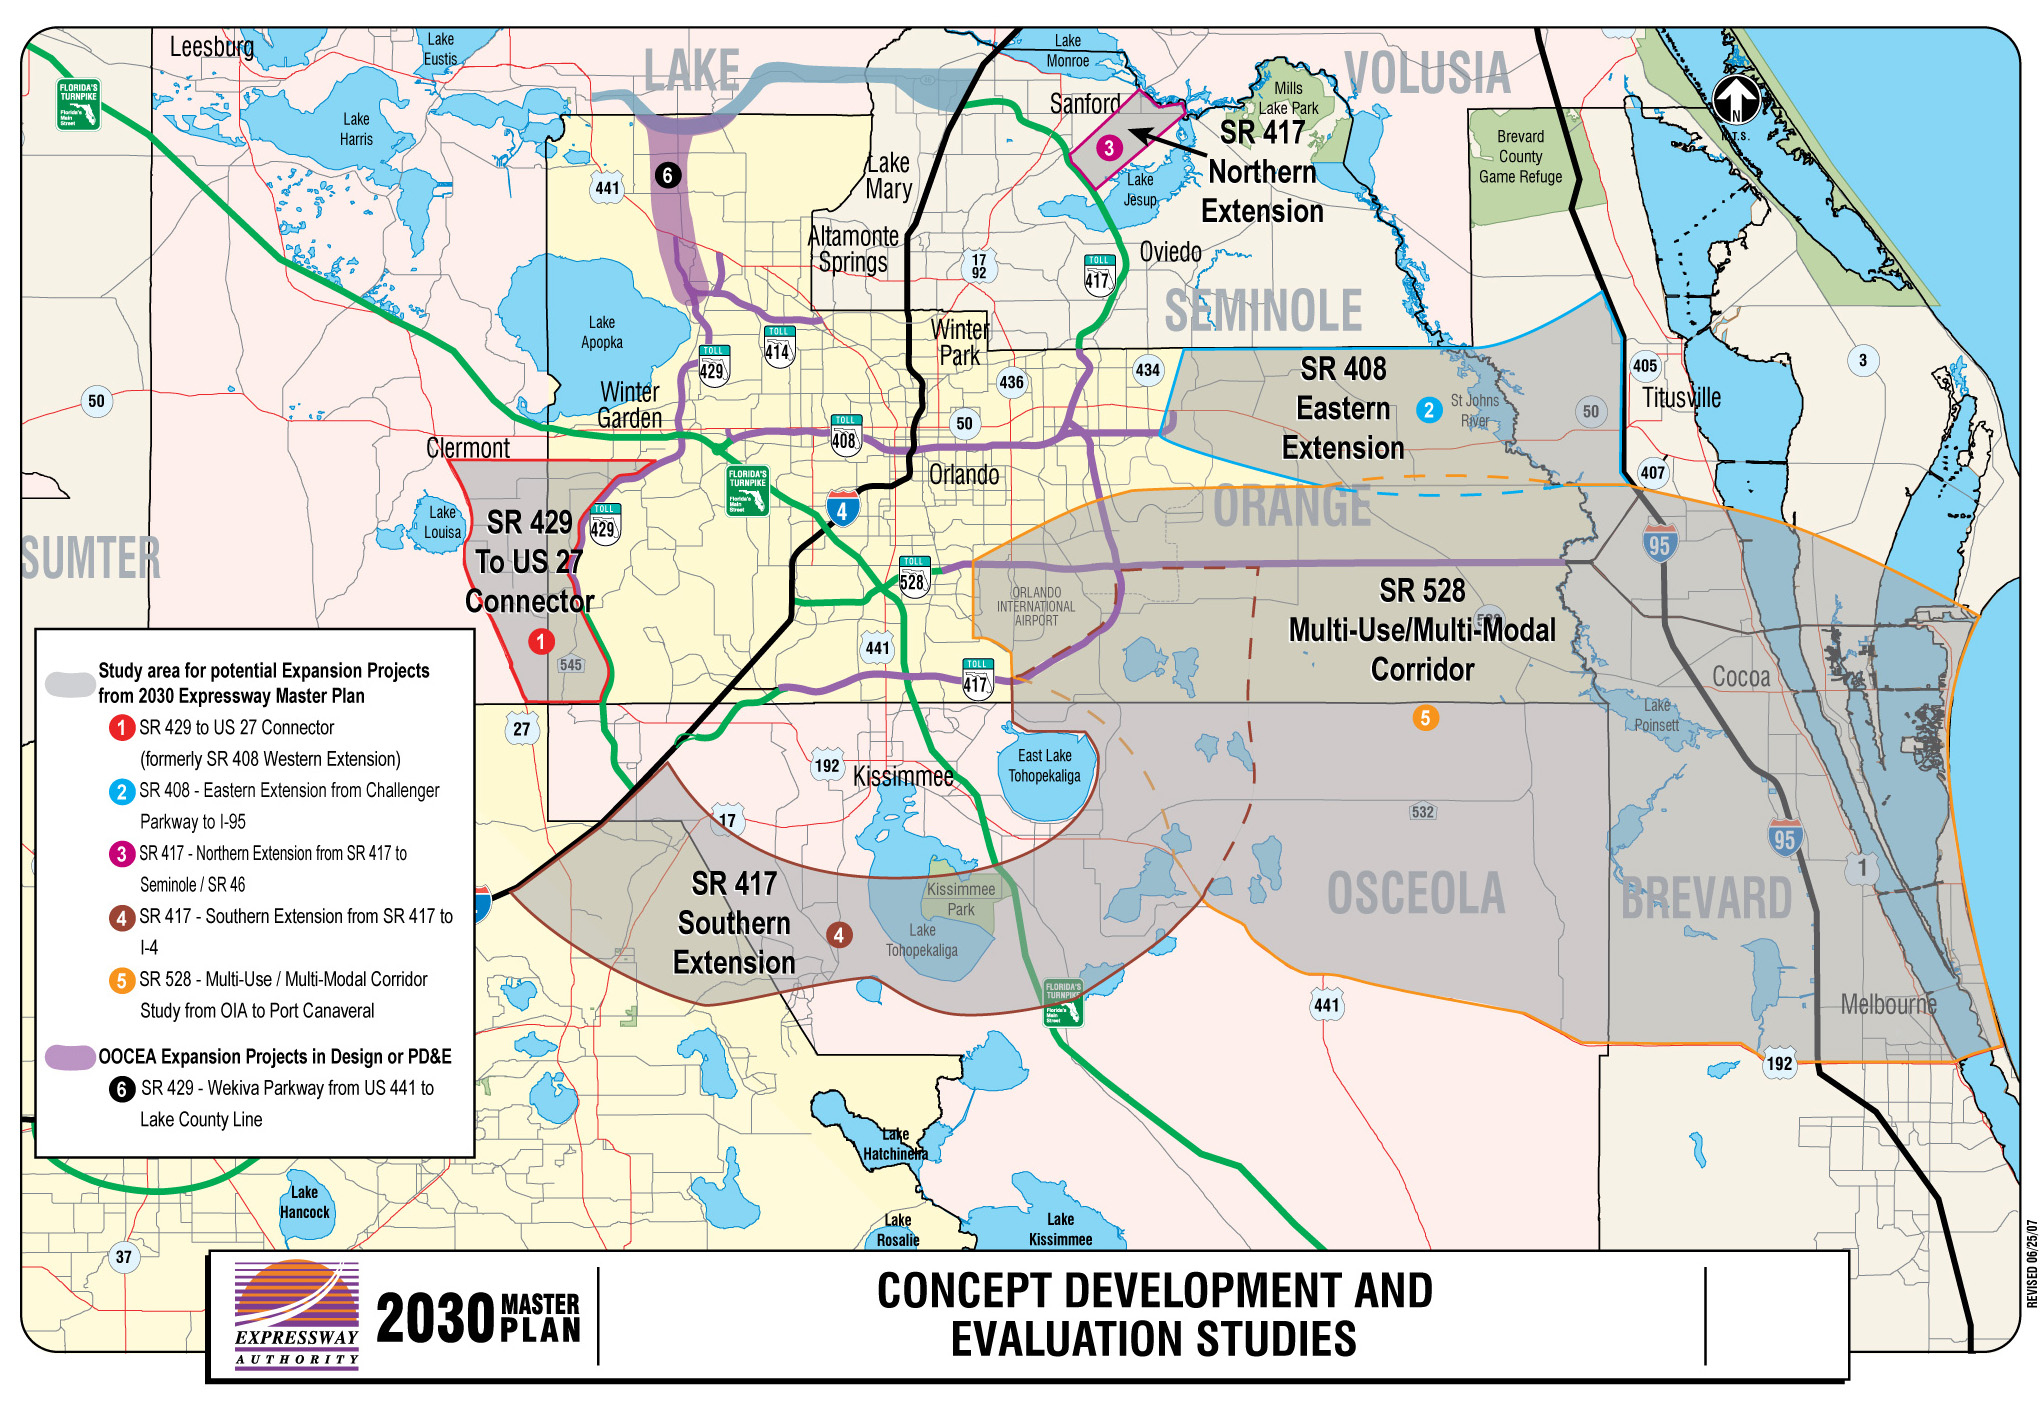 Road Maps Of Orlando And Travel Information | Download Free Road - Road Map Of Central Florida